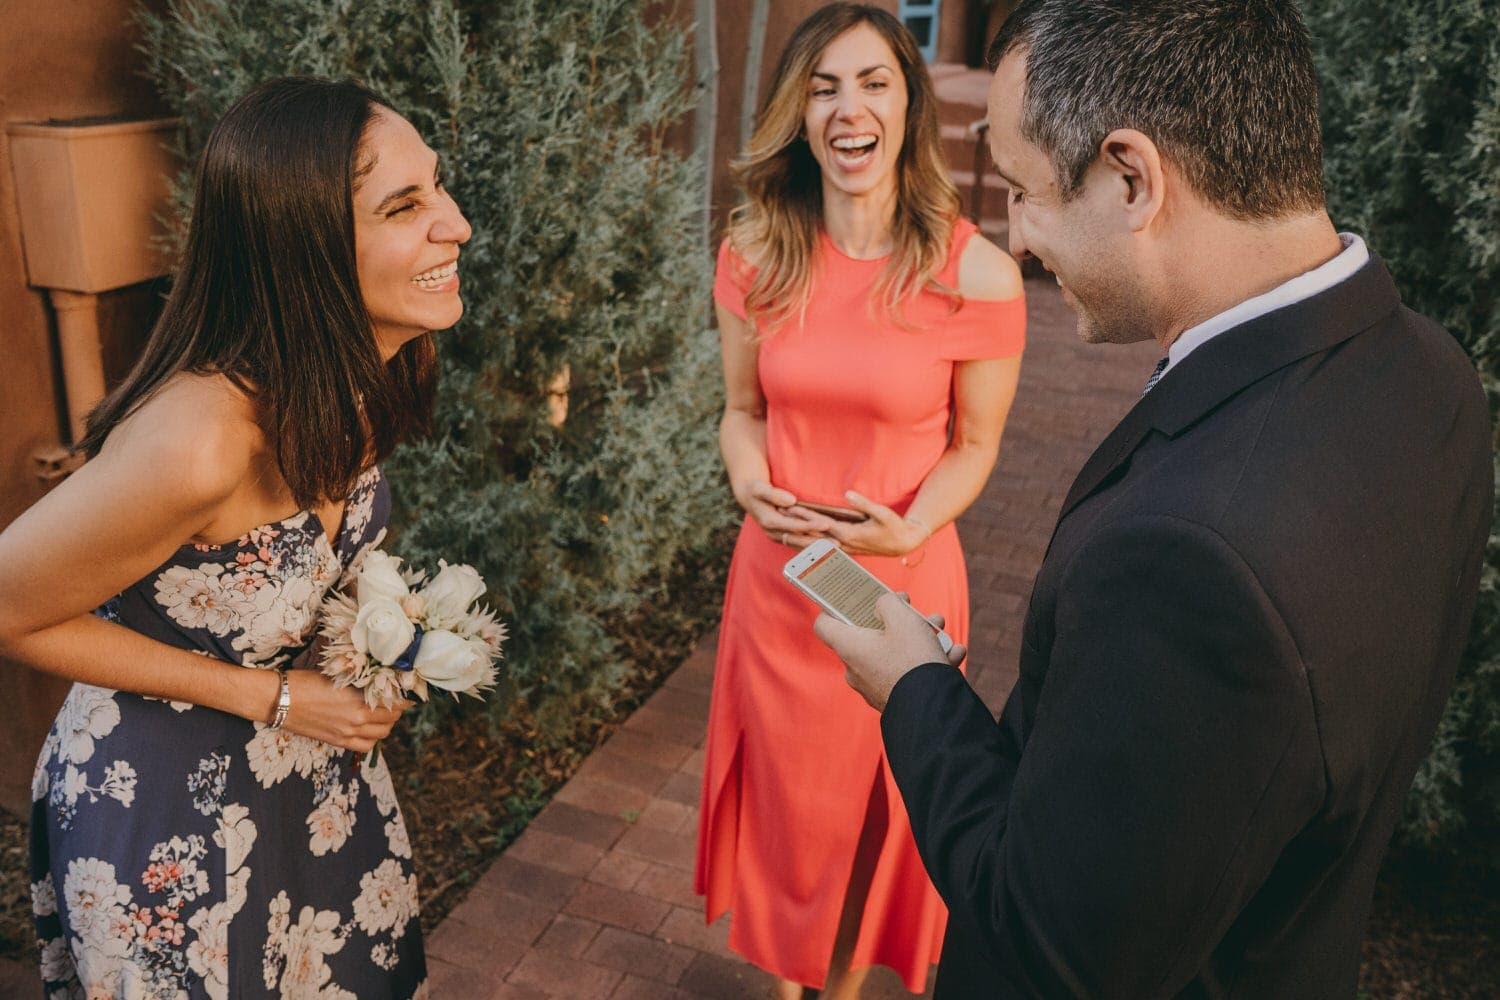 Officiant laughing during the wedding ceremony